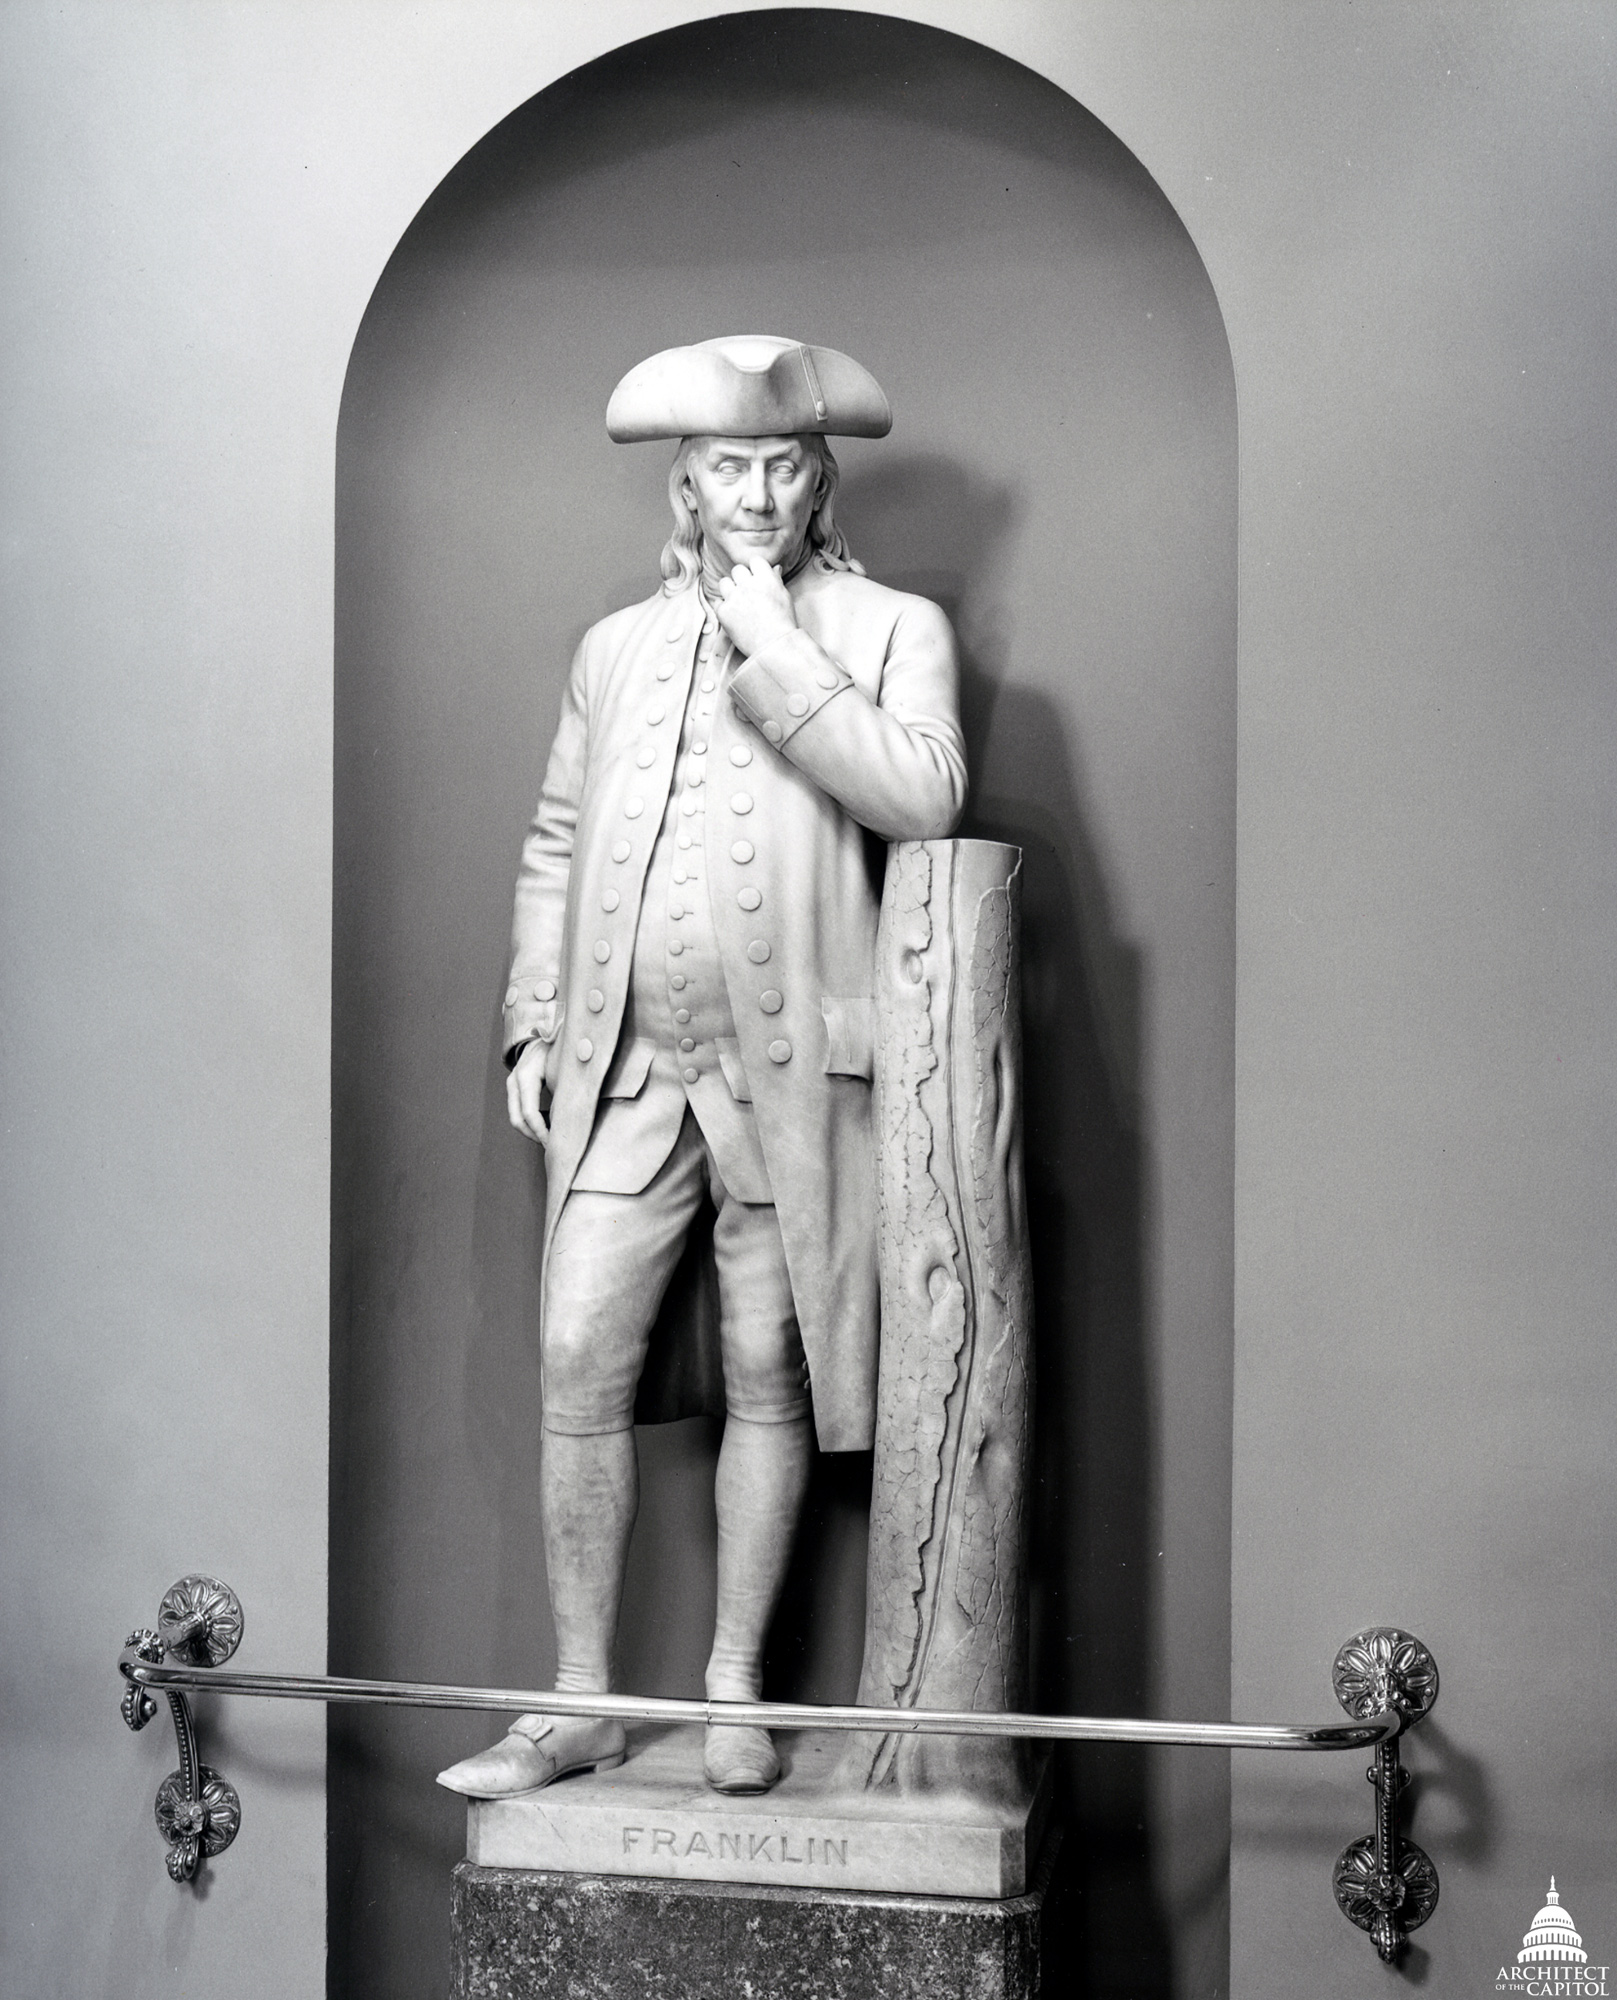 Benjamin Franklin statue by by Hiram Powers.